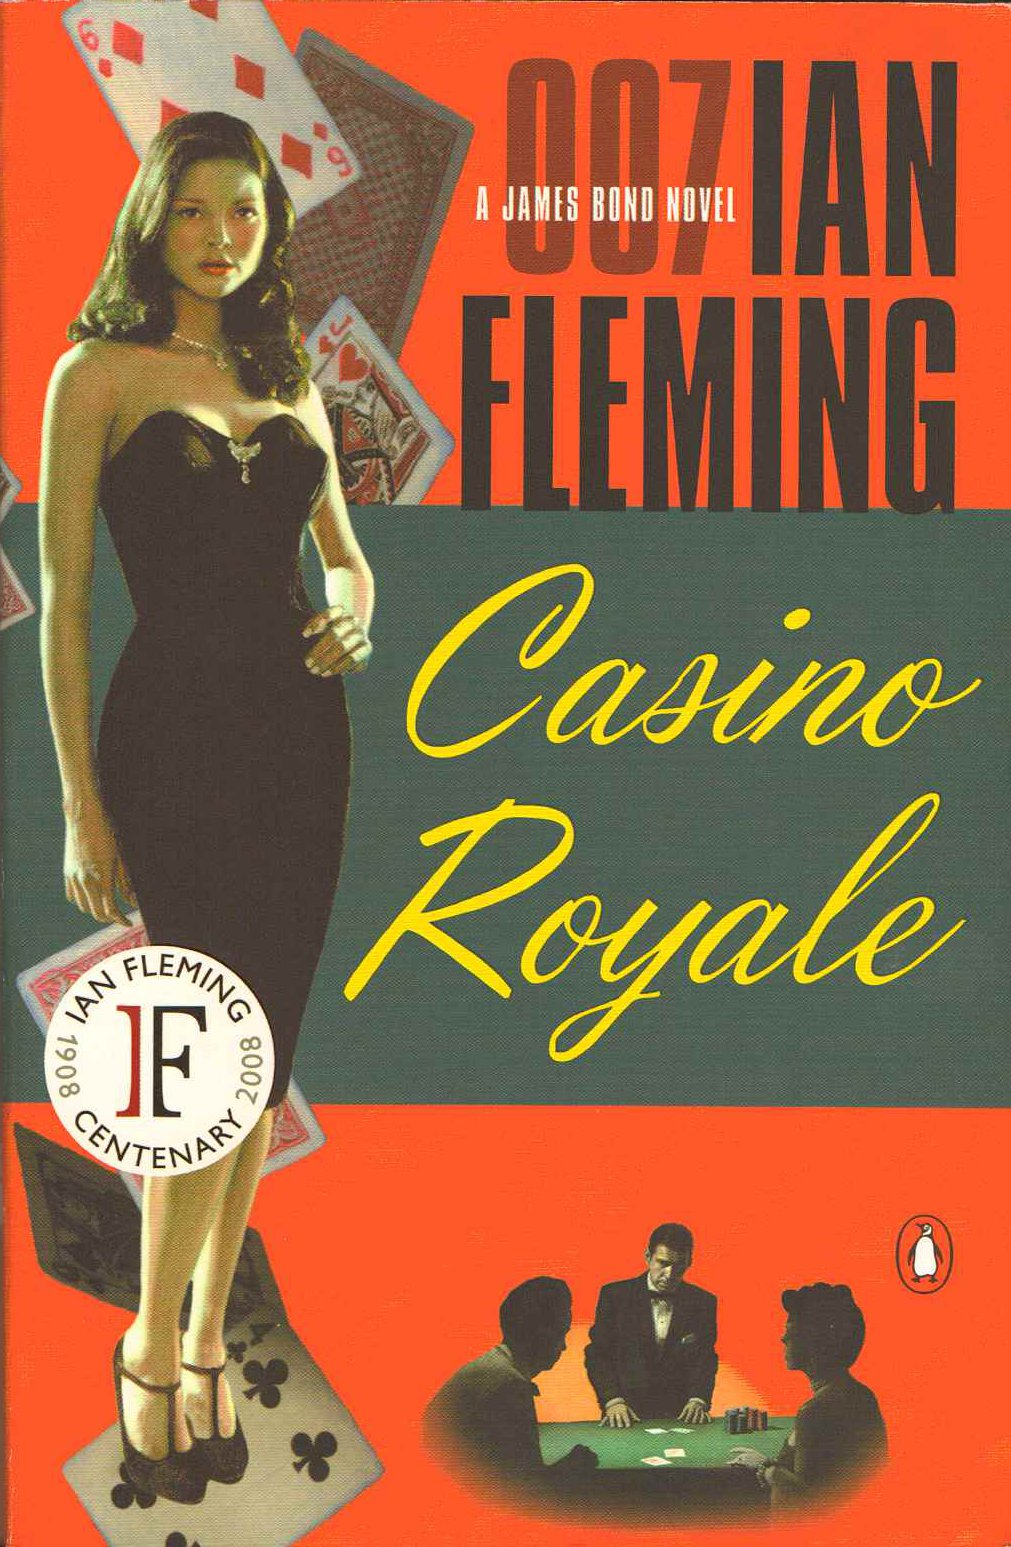 Bond book casino fleming royale chapin casino michigan